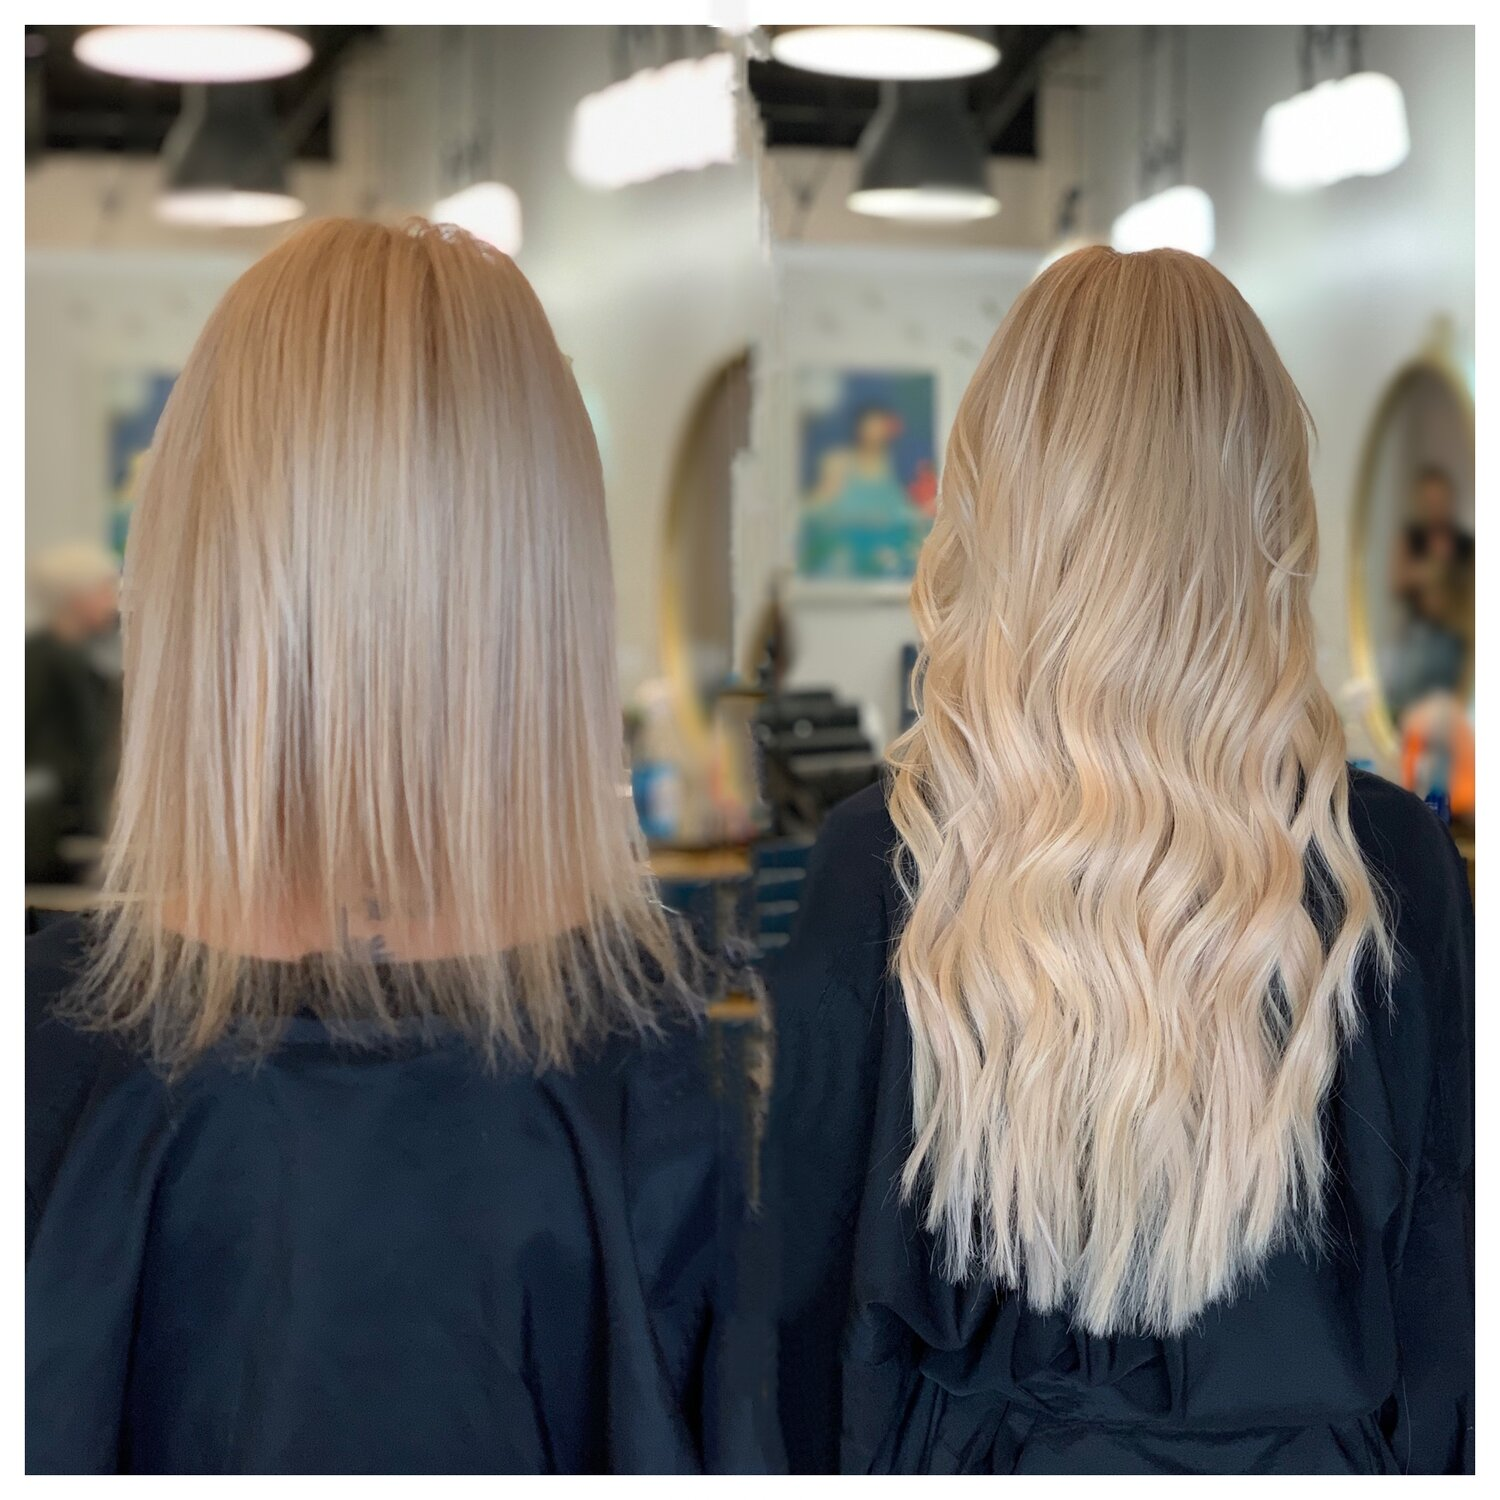 Hair Extensions that Matter in South Florida — Best Fusion hair salon